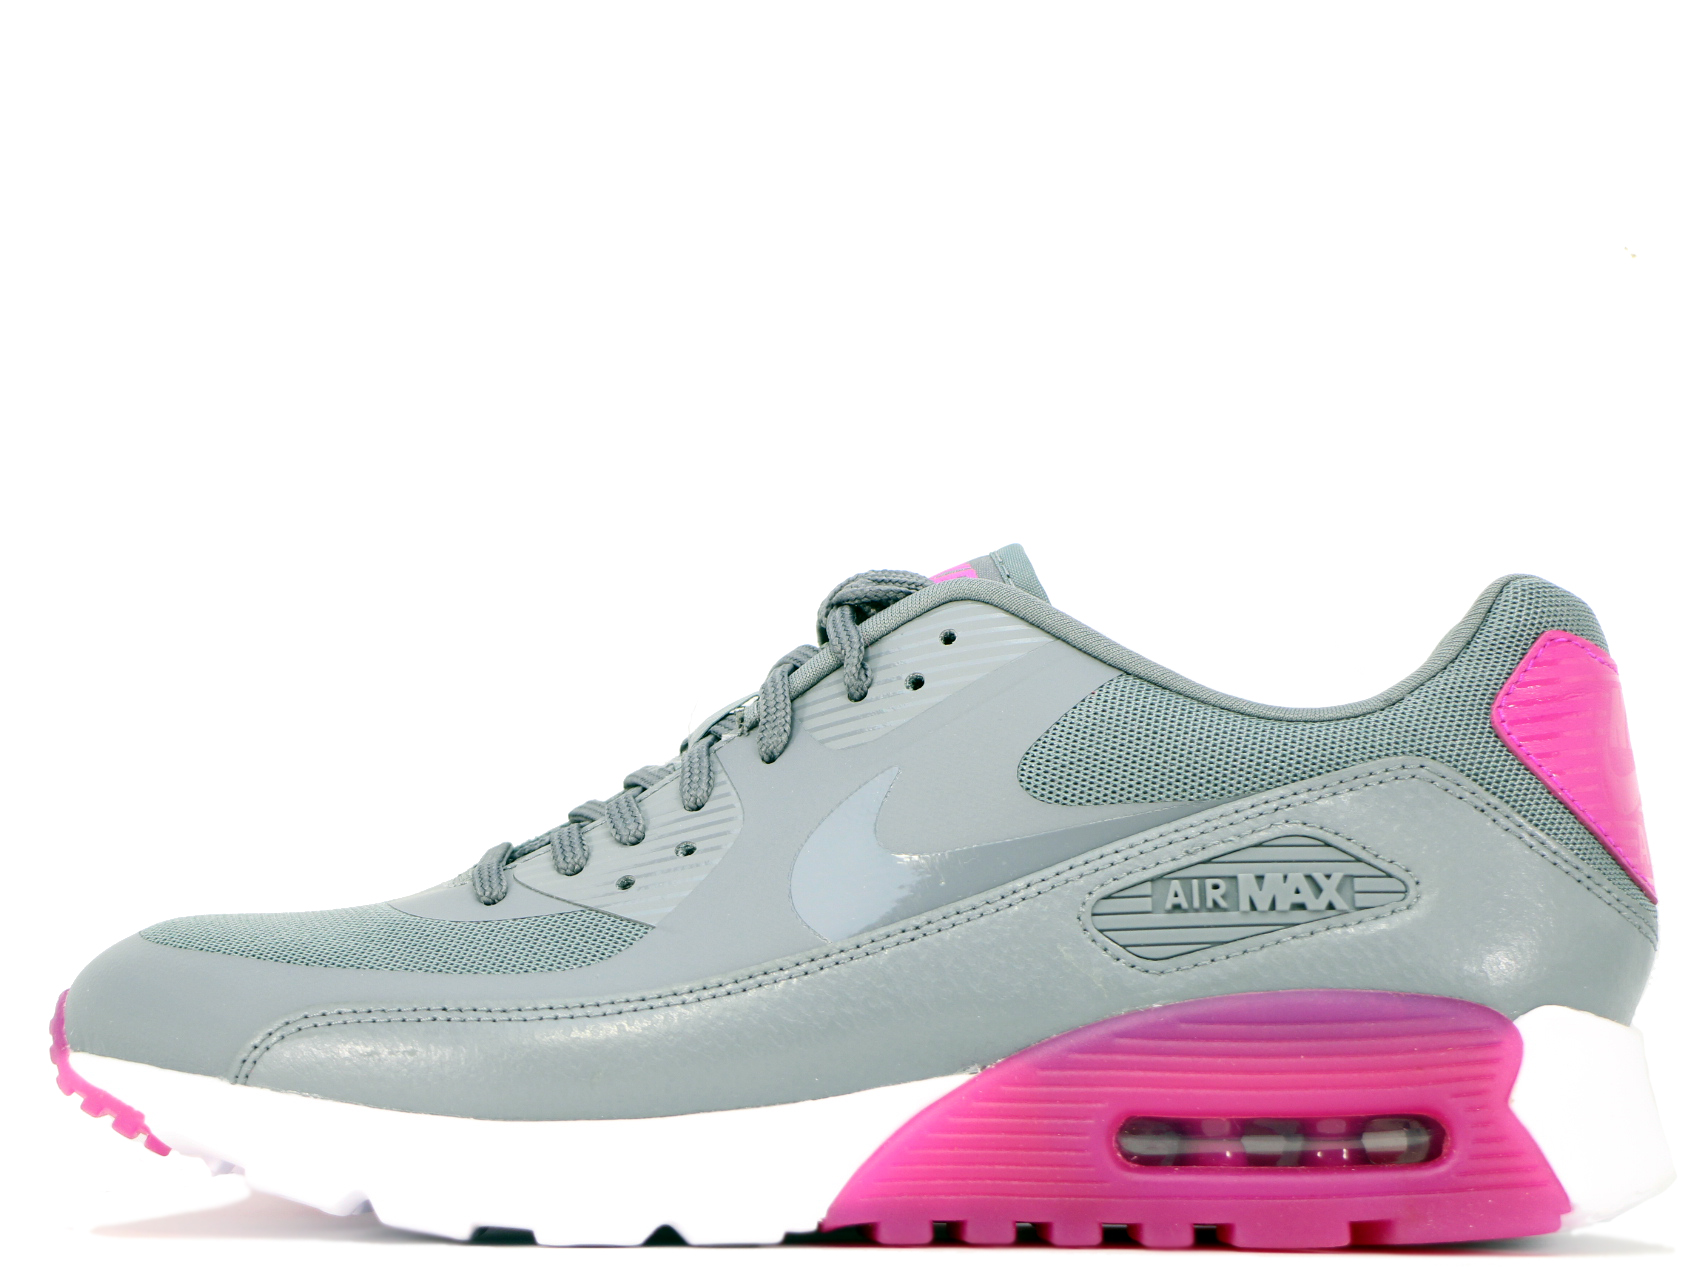 WMNS AIR MAX 90 ULTRA ESSENTIALの商品画像